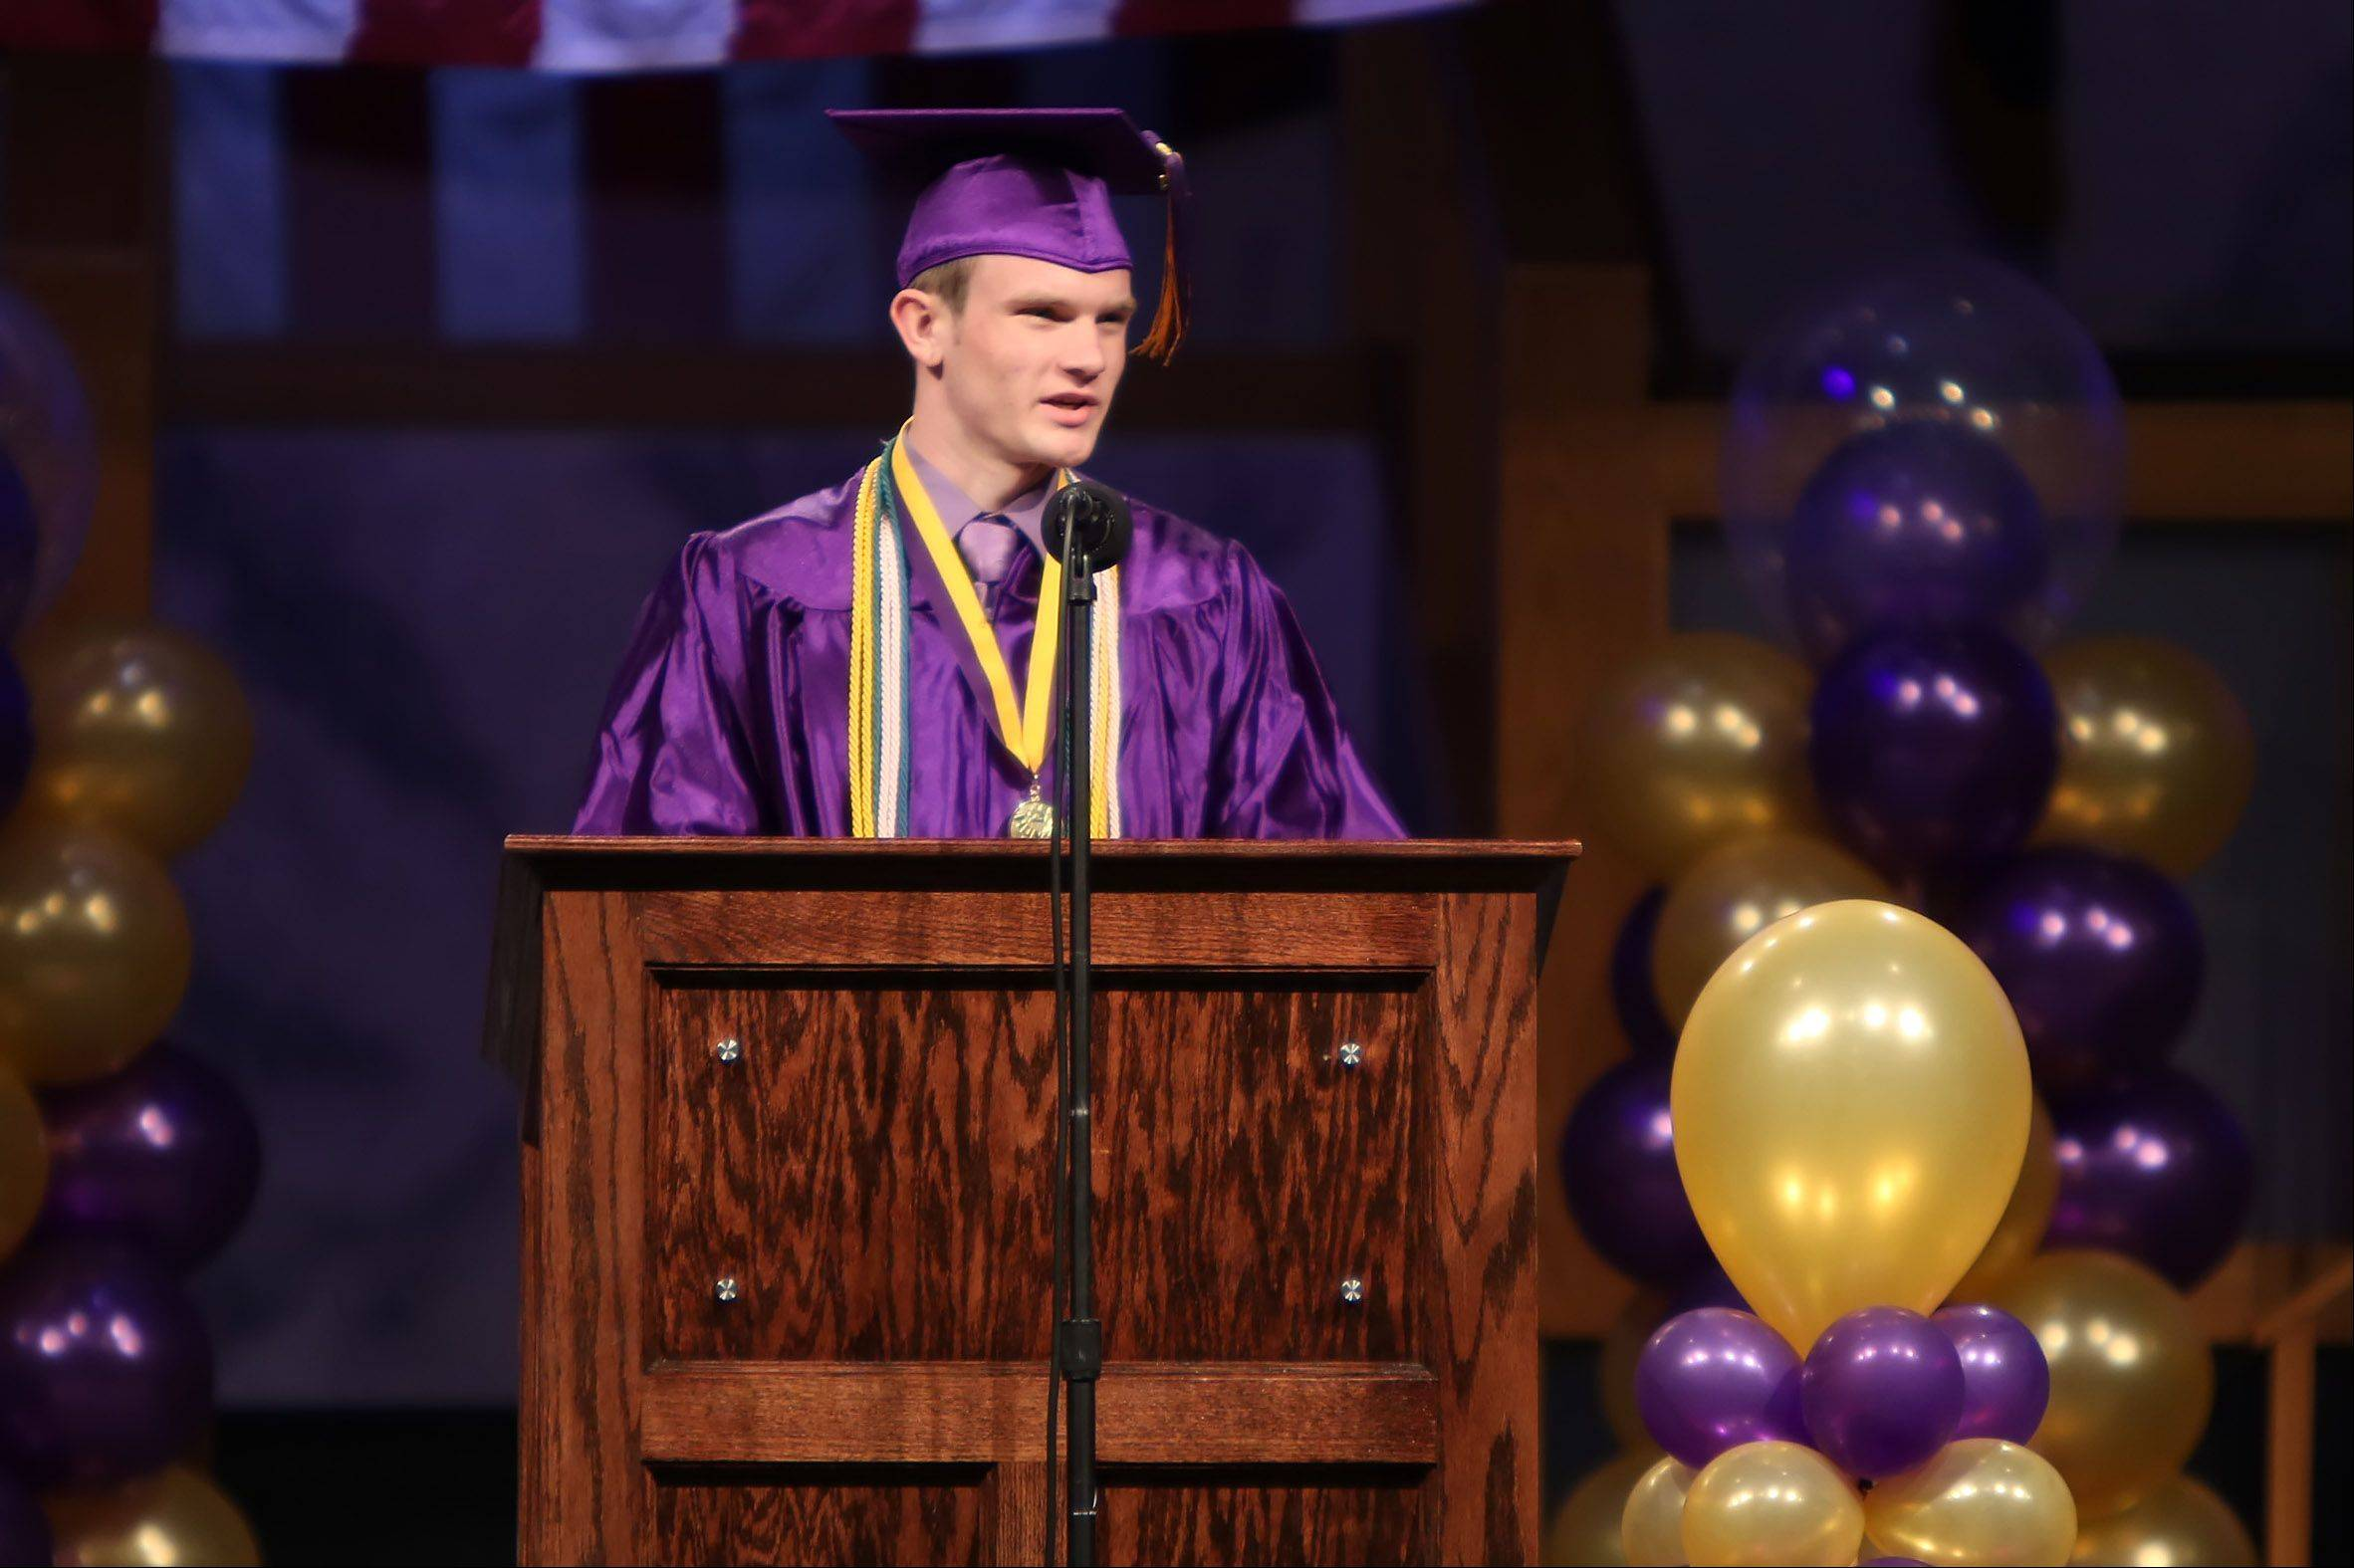 Senior honor student Colin Bernhardt gives his address during the Wauconda High School graduation at Quentin Road Bible Baptist Church on Sunday in Lake Zurich. There were 341 graduating seniors for the 97th annual commencement ceremony.